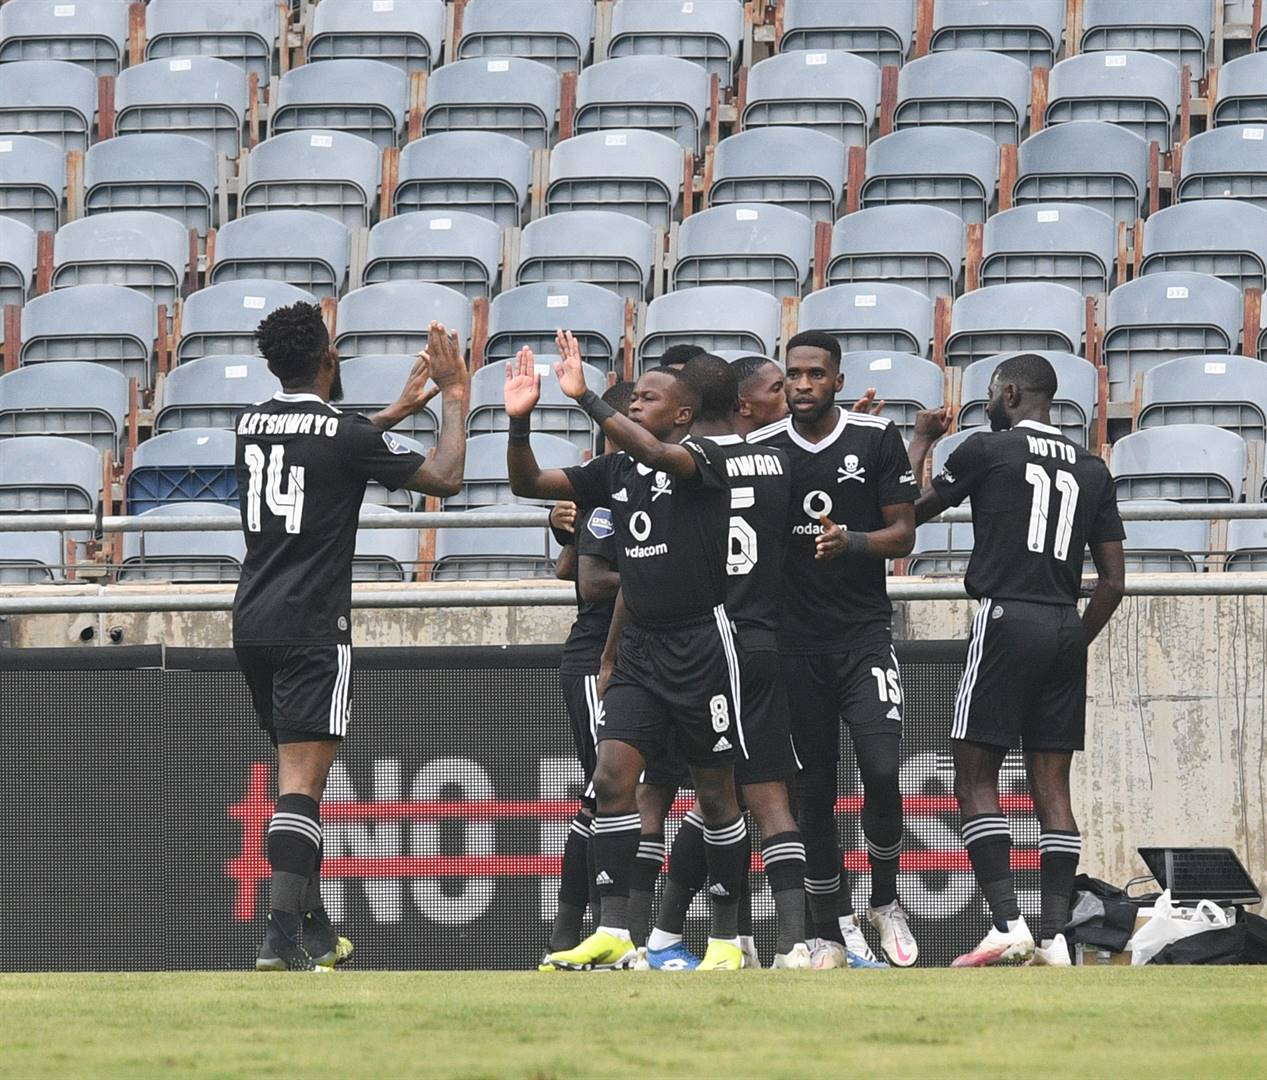 Orlando Pirates captain Thulani Hlatshwayo and his team-mates celebrate Bucs' win over Cape Town City on TuesdayPicture: Sydney Mahlangu / BackpagePix